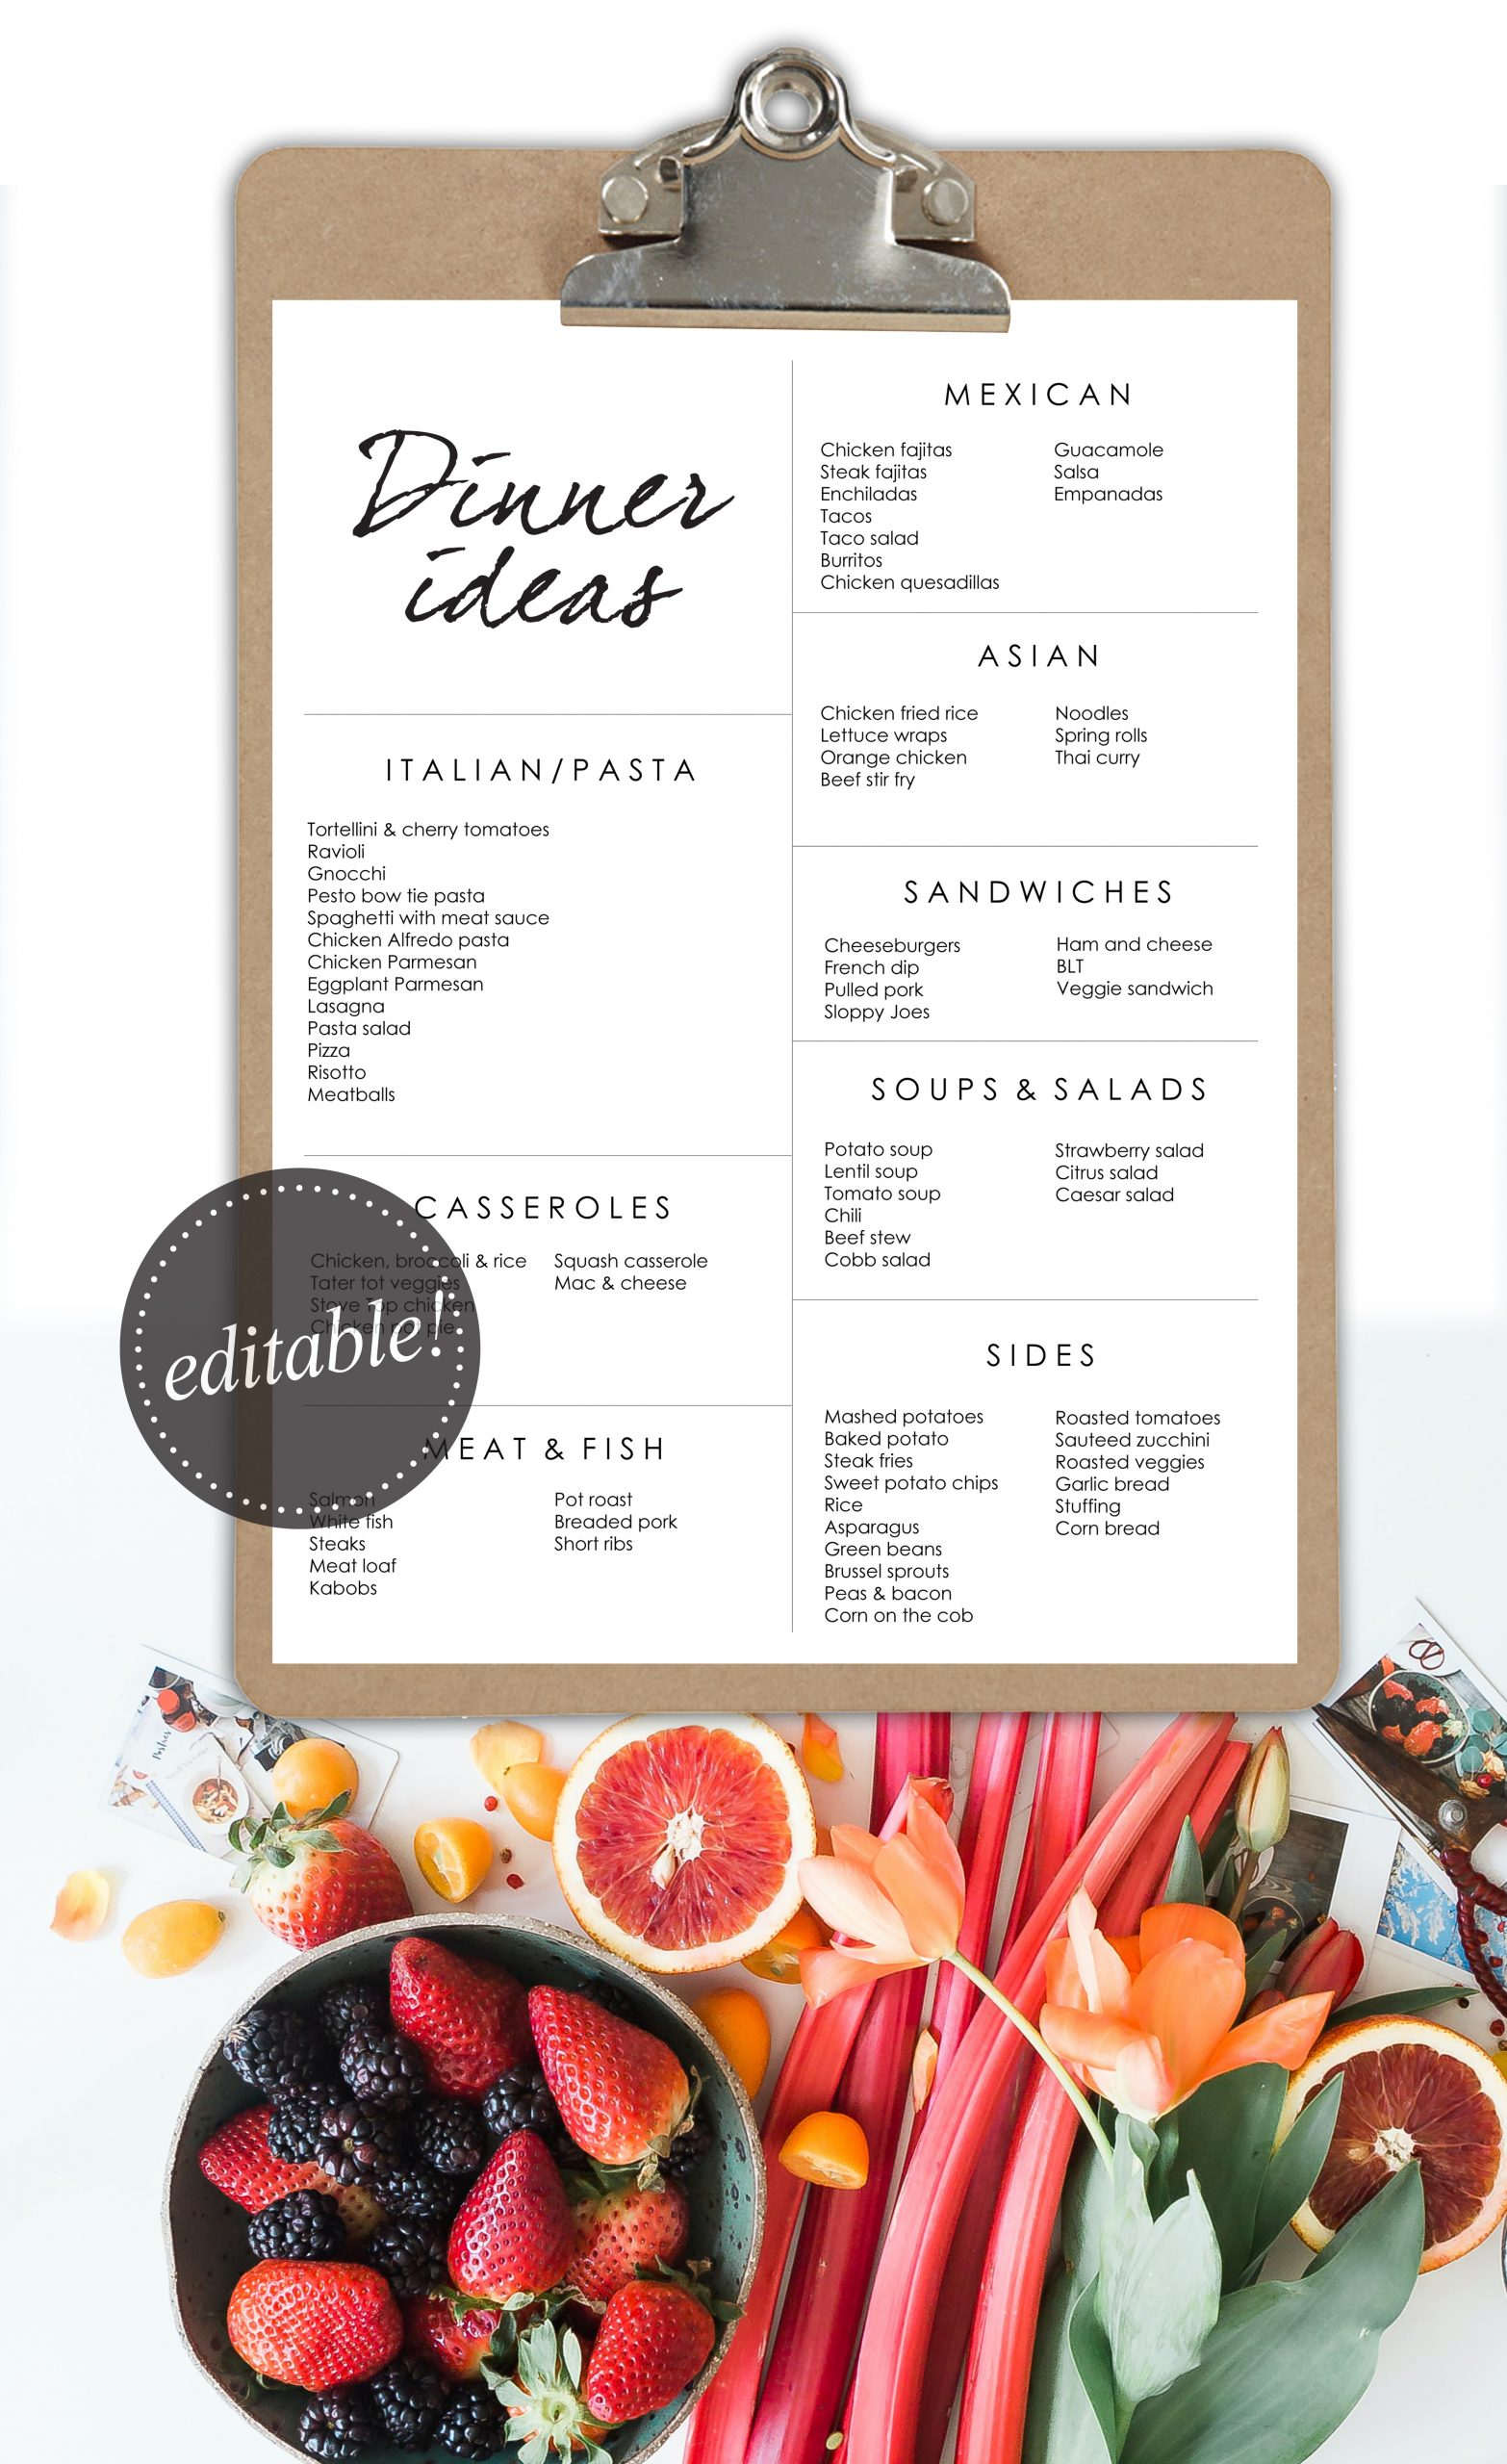 Dinner Ideas editable printable pins - copyright housemixblog.com